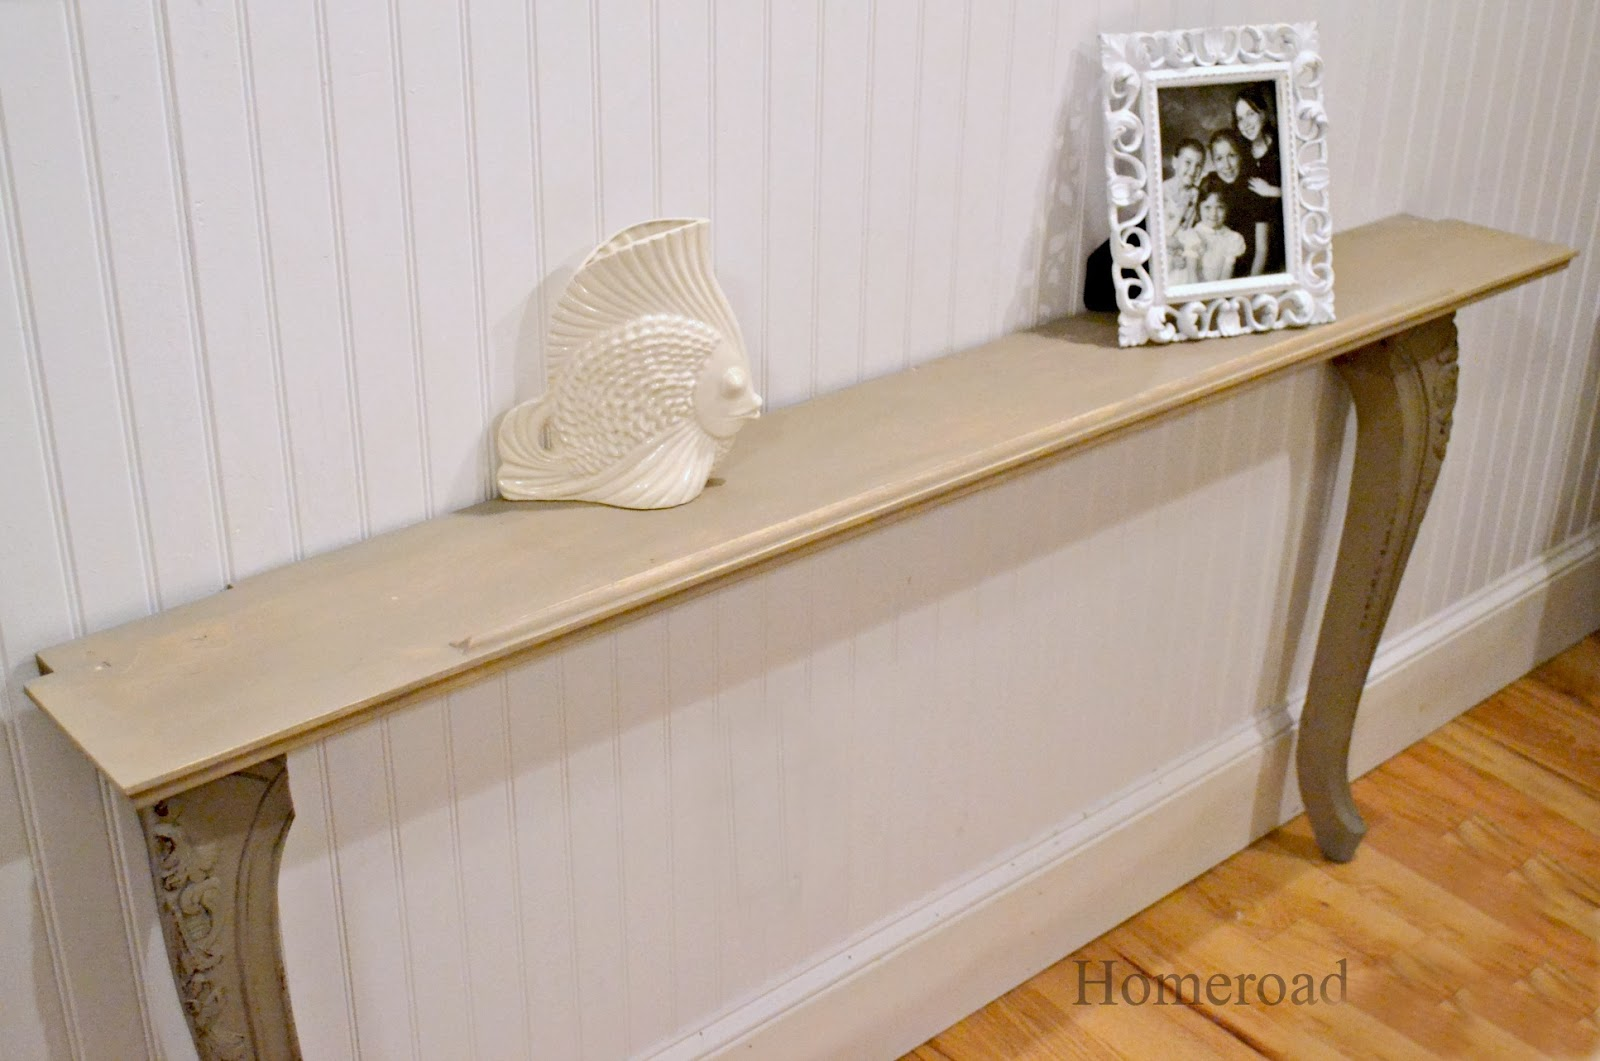 sofa table on wall 2 go prospect diy narrow or homeroad